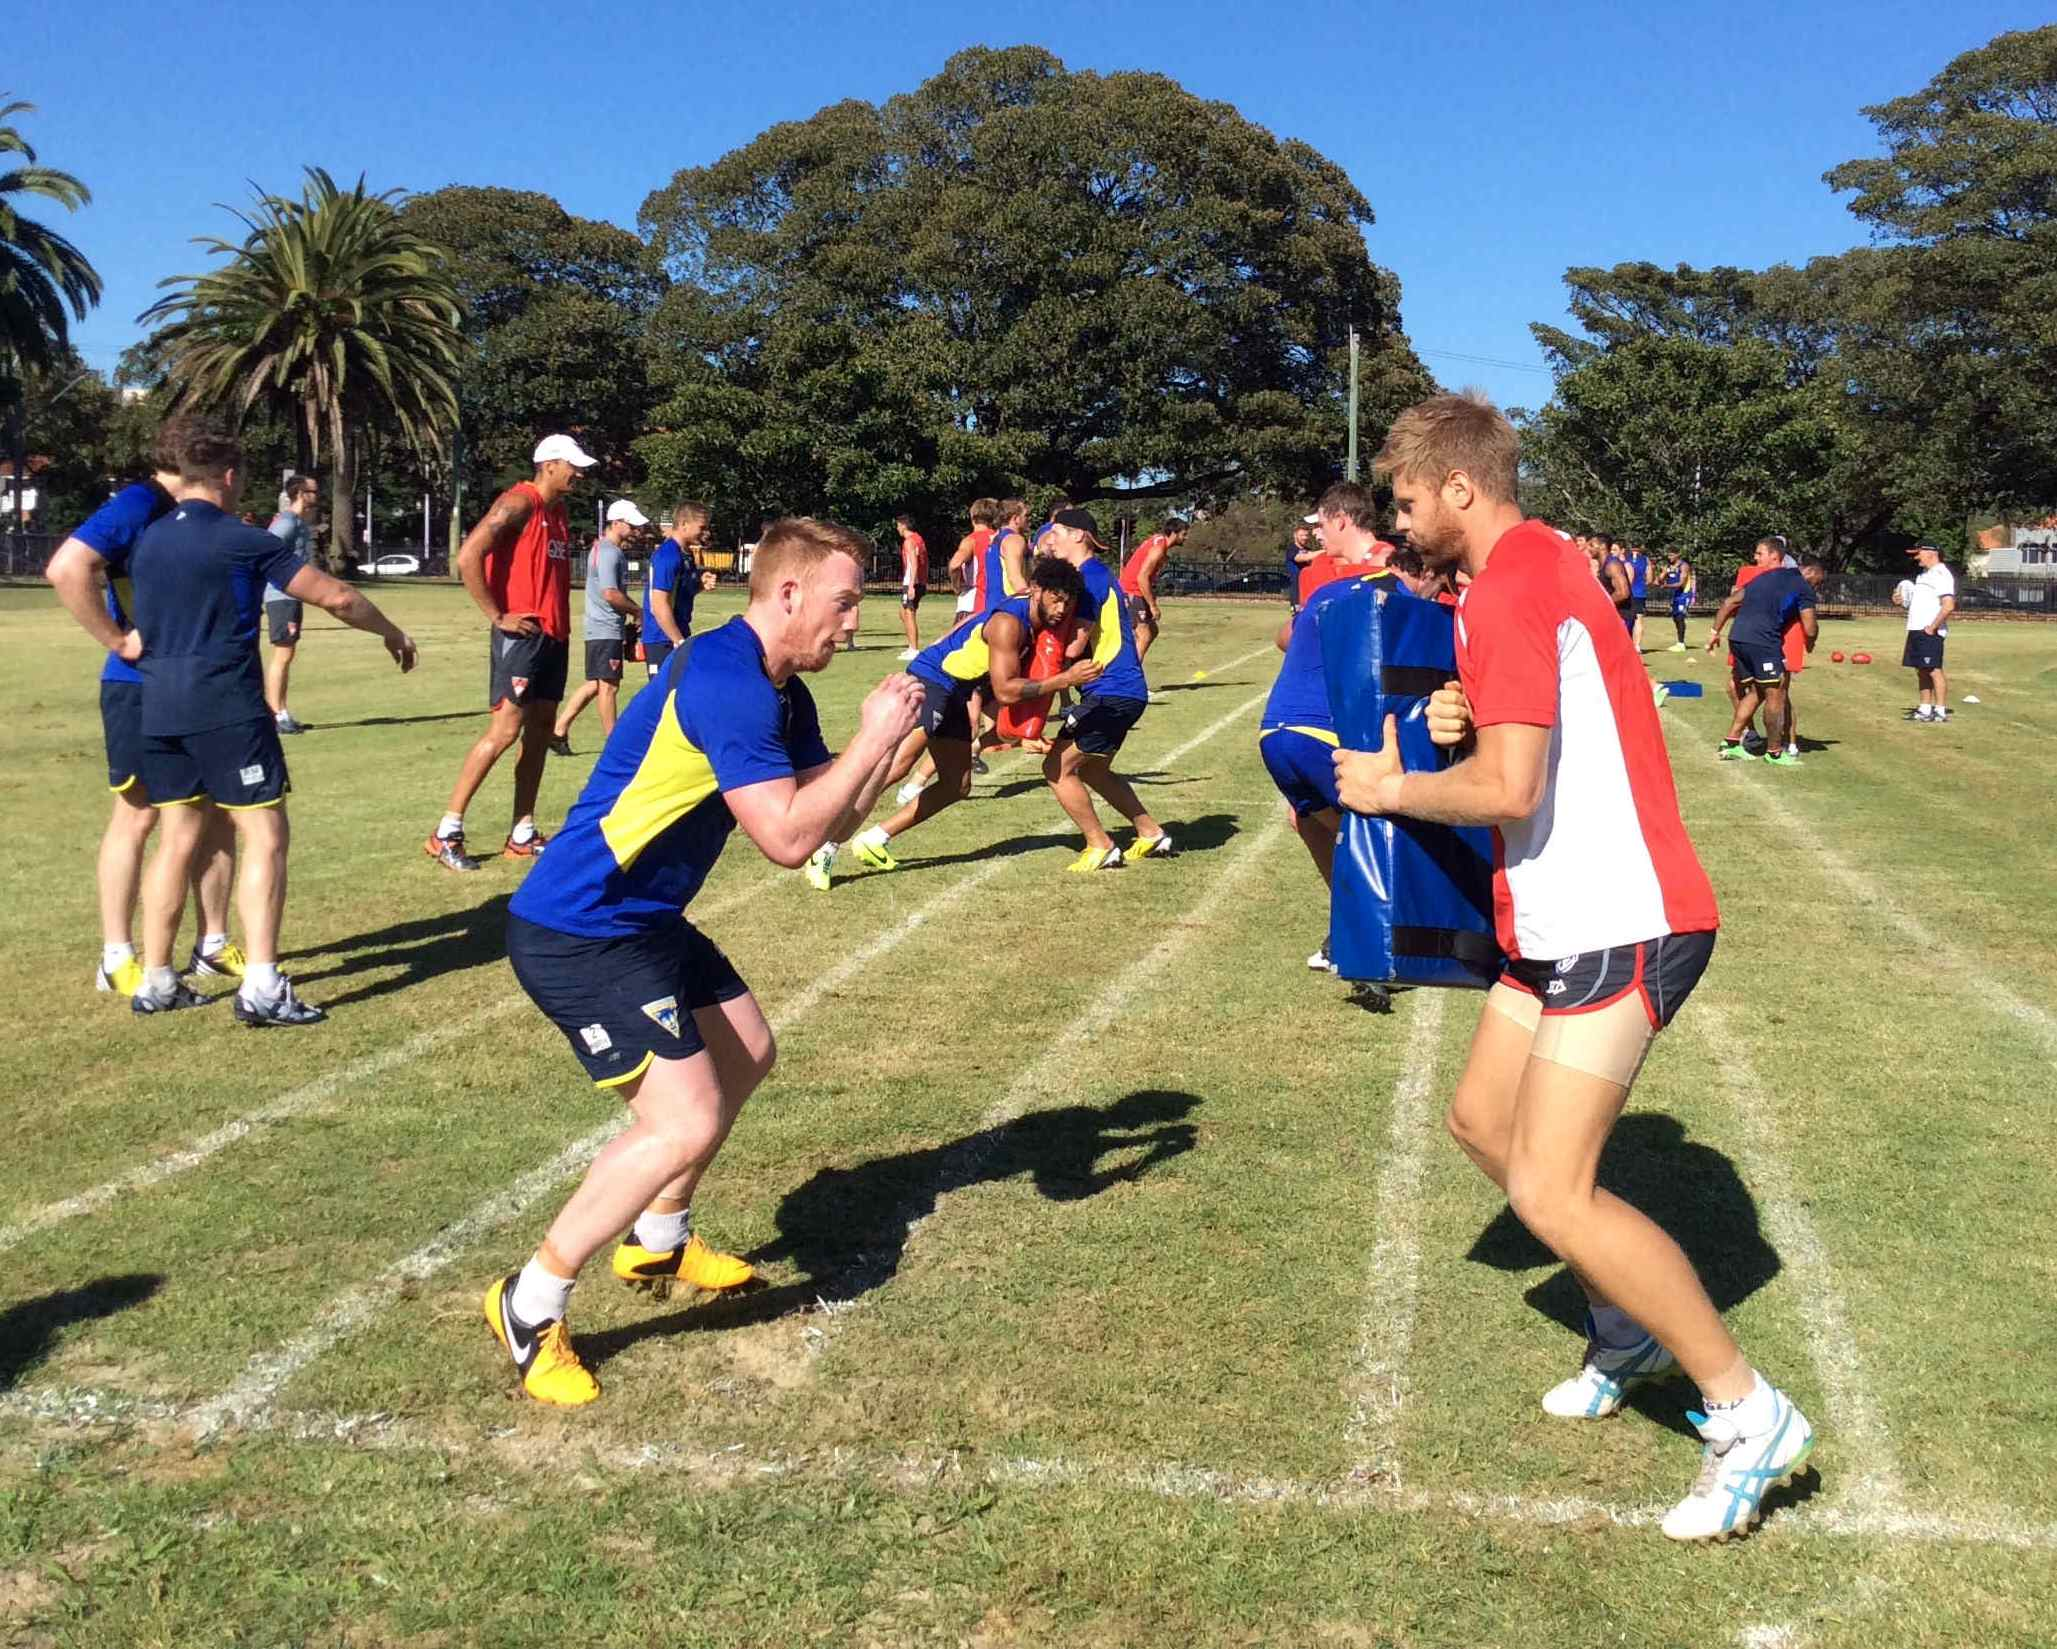 VIDEOS: Shared training with Sydney Swans starts week two of Wolves' training camp in Australi